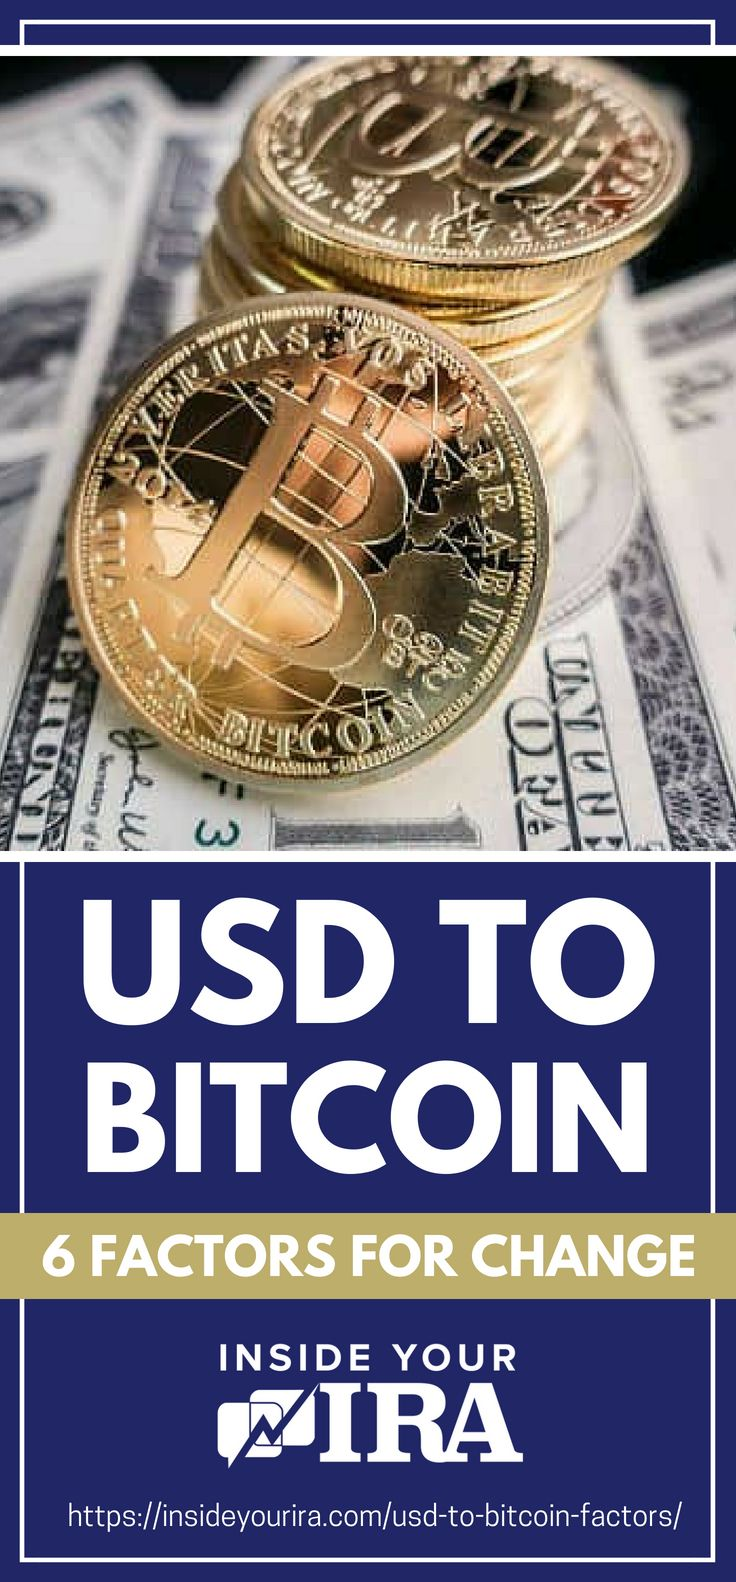 USD To Bitcoin: Factors For Change   Inside Your IRA https://insideyourira.com/usd-to-bitcoin-factors/